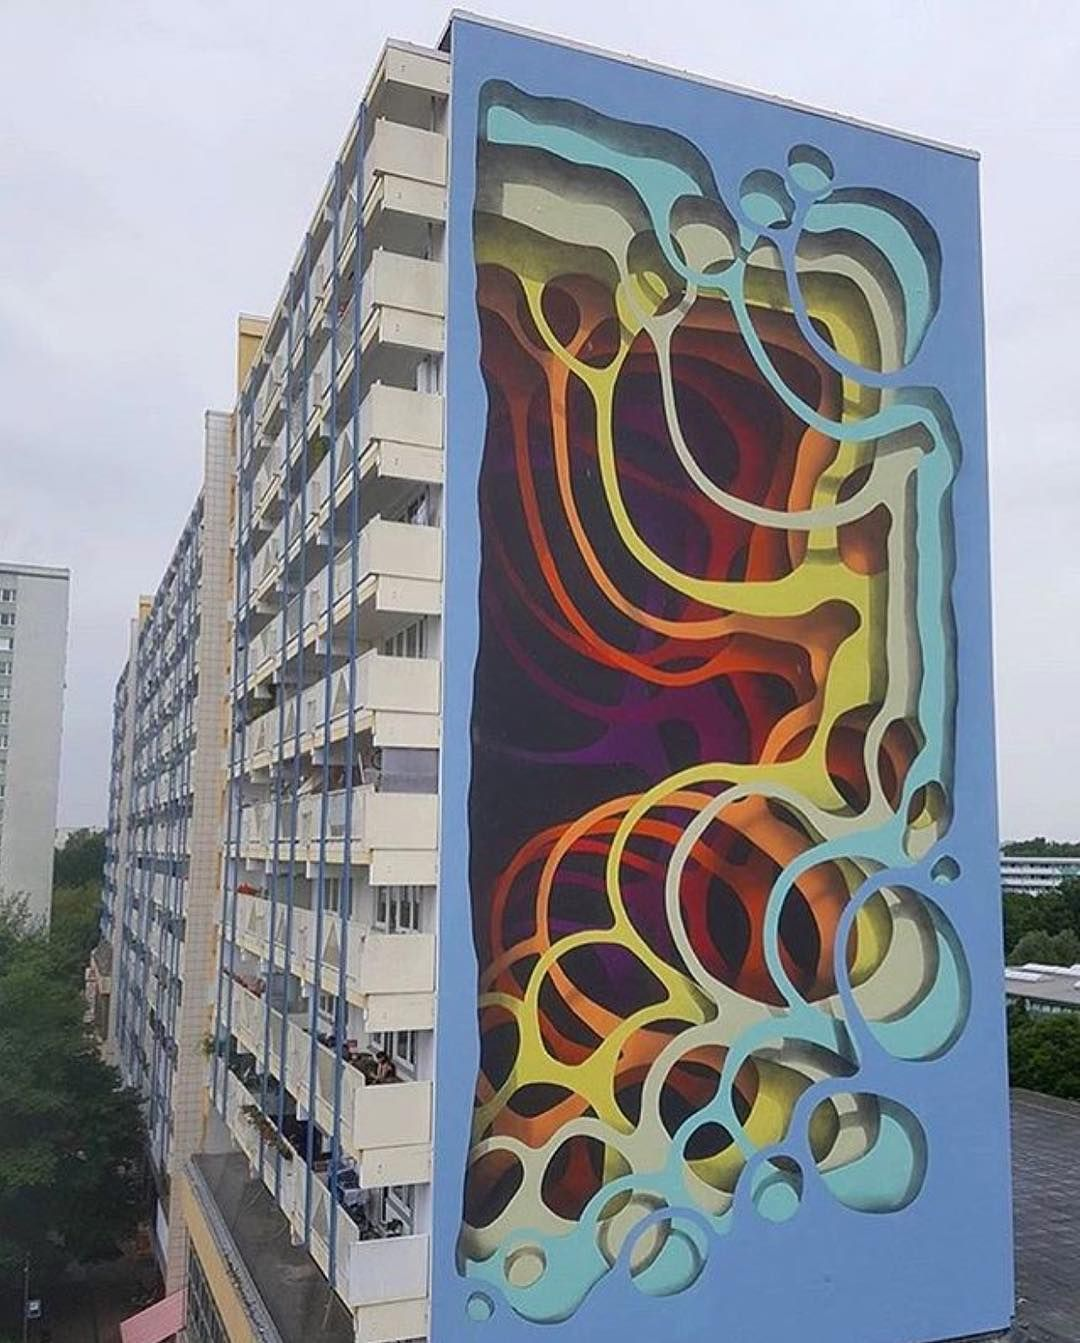 New Mural From 1010 1010zzz In Berlin Germany Look For 1010